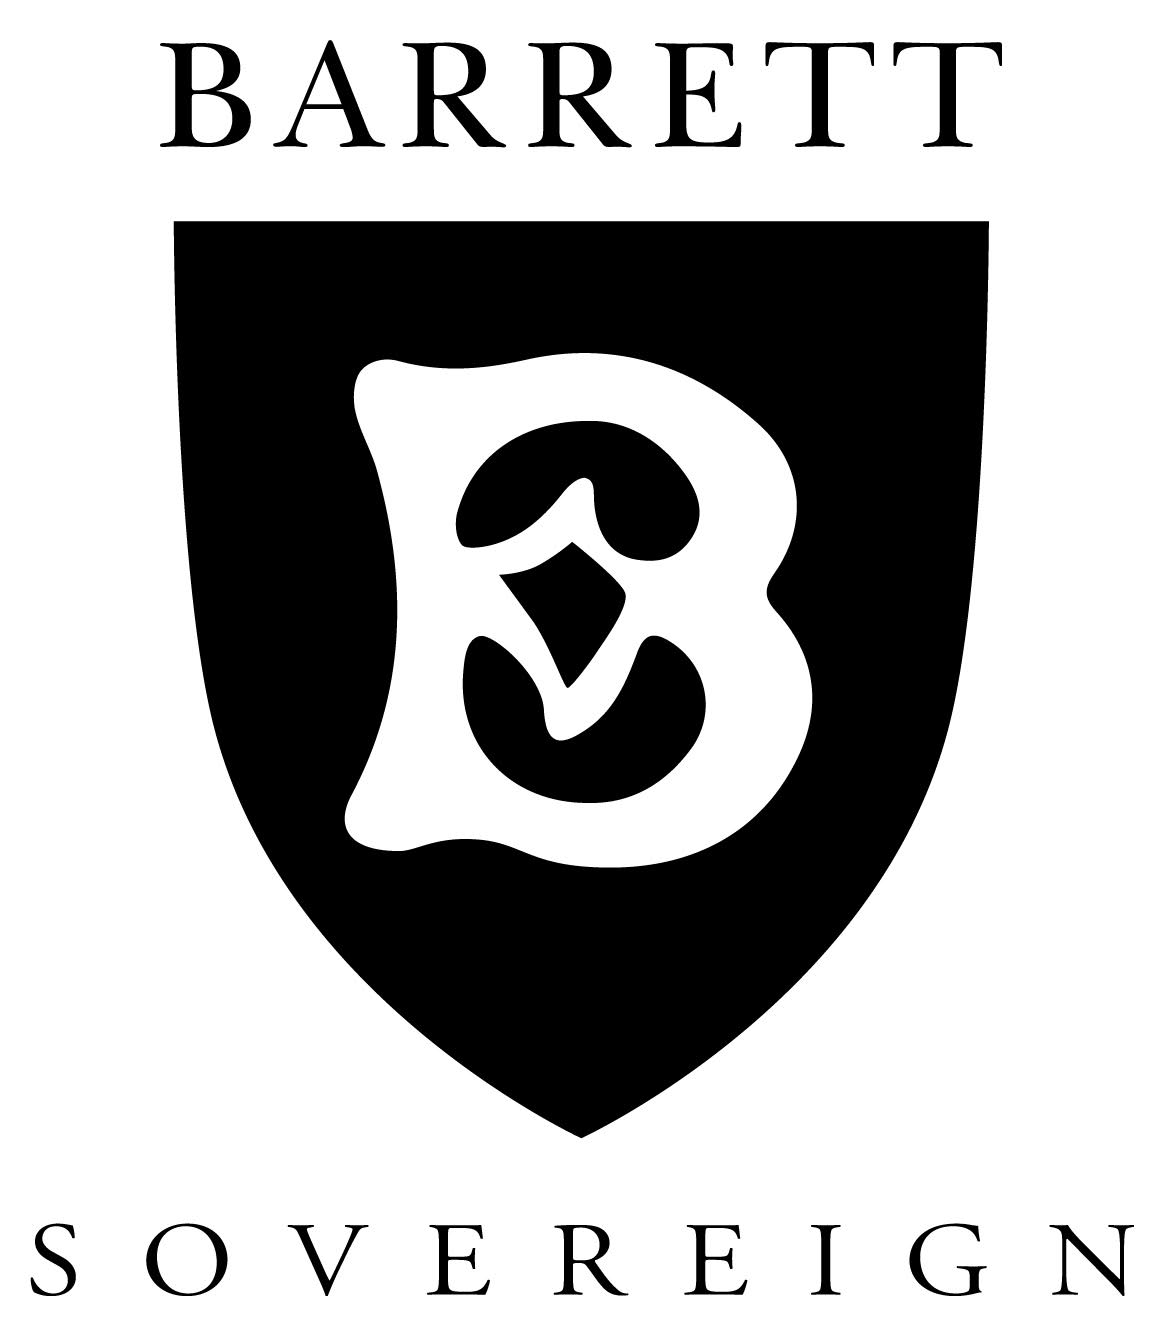 Barrett Sovereign